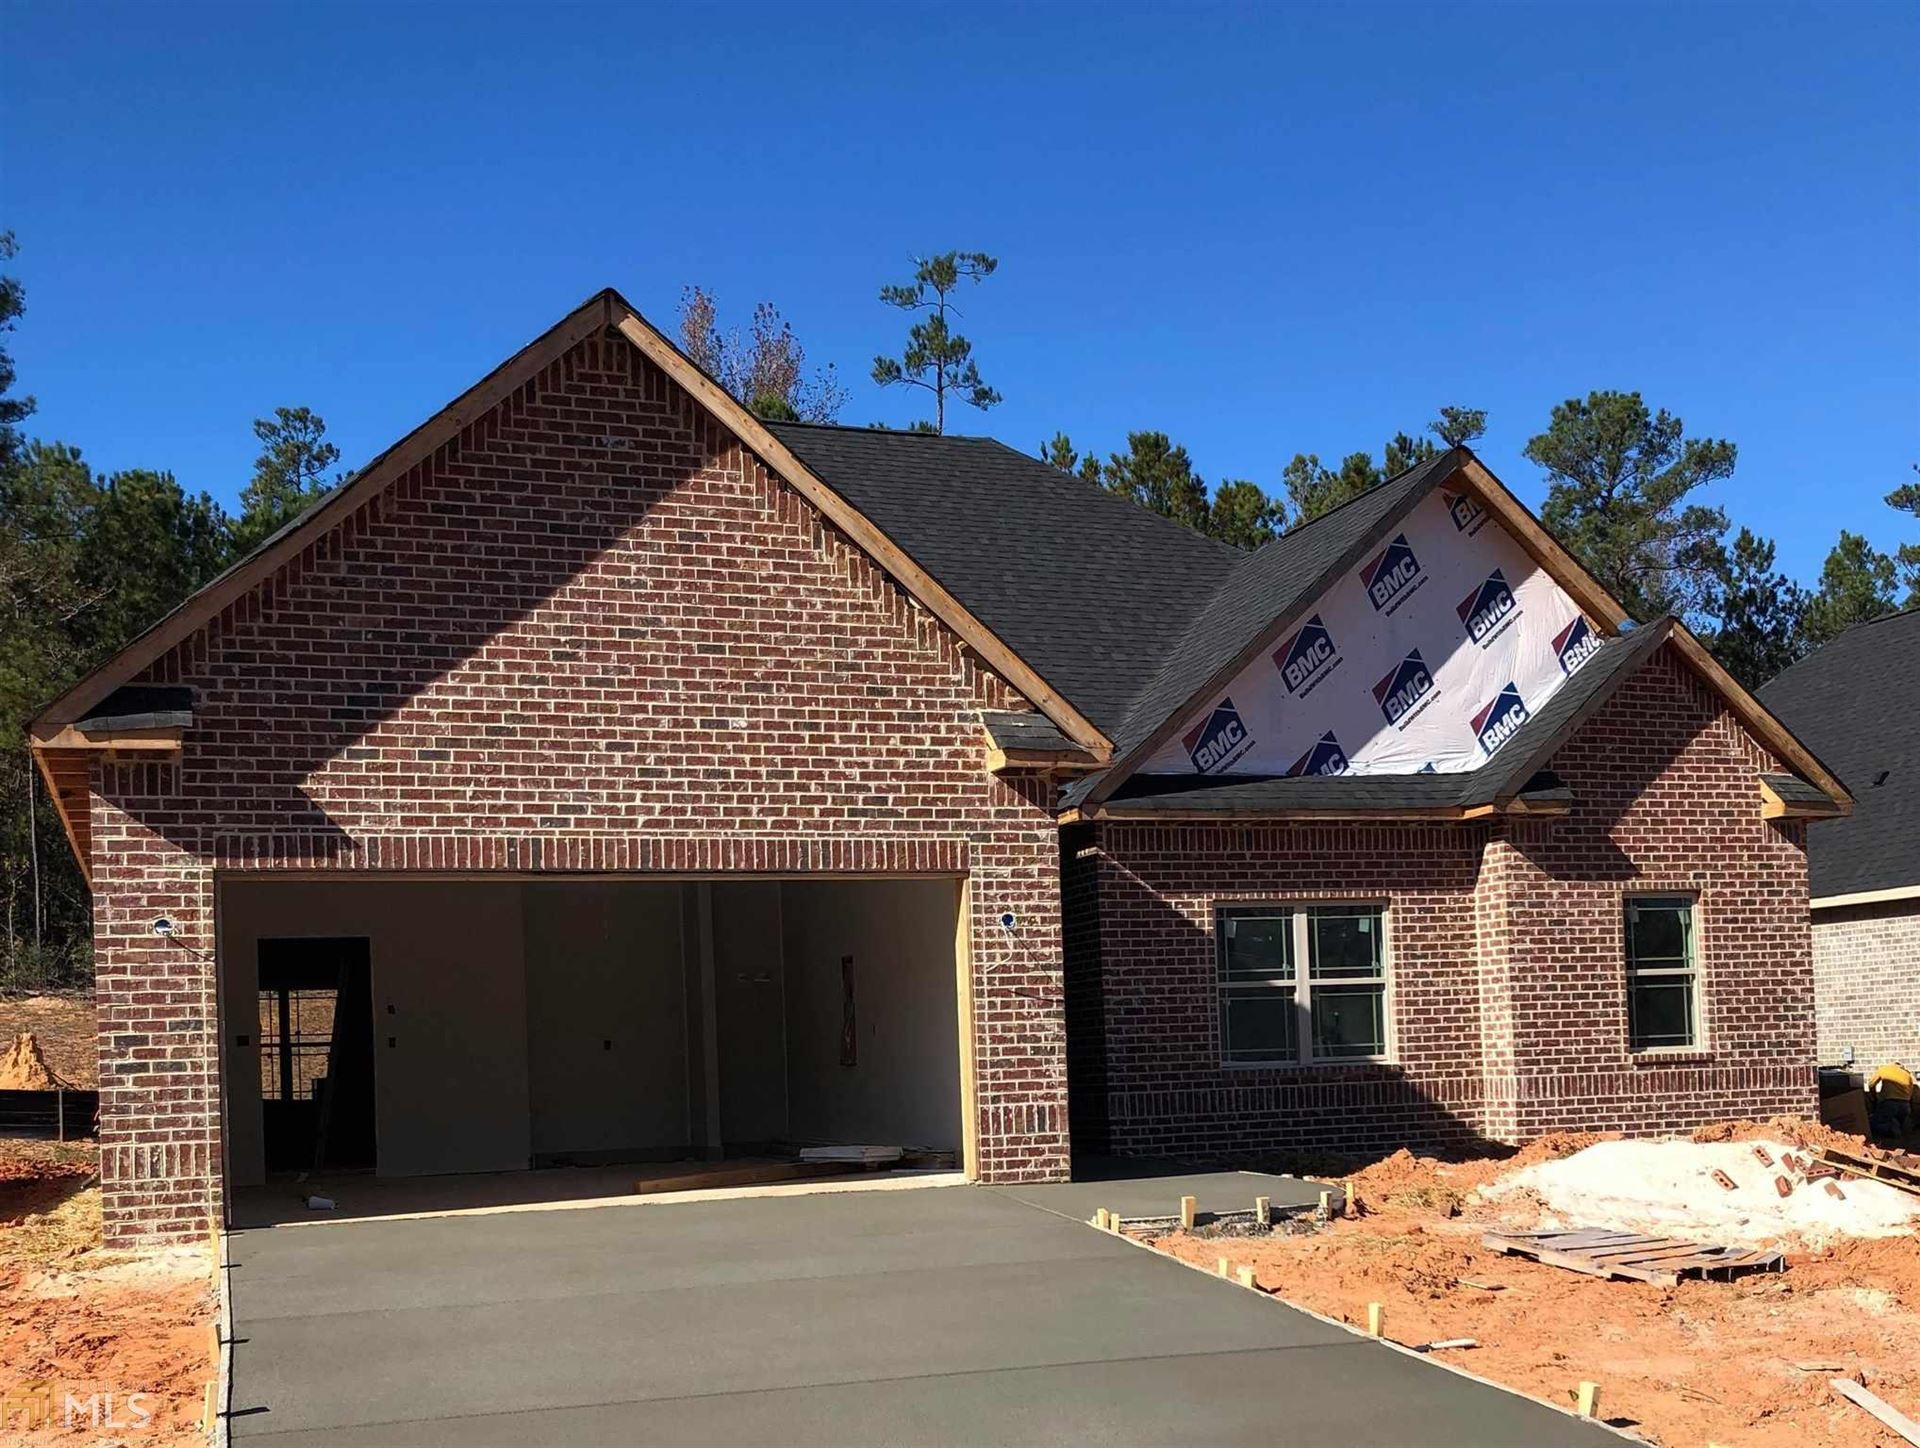 155 Summer Grove Ln, Macon, GA 31206 - MLS#: 8842200